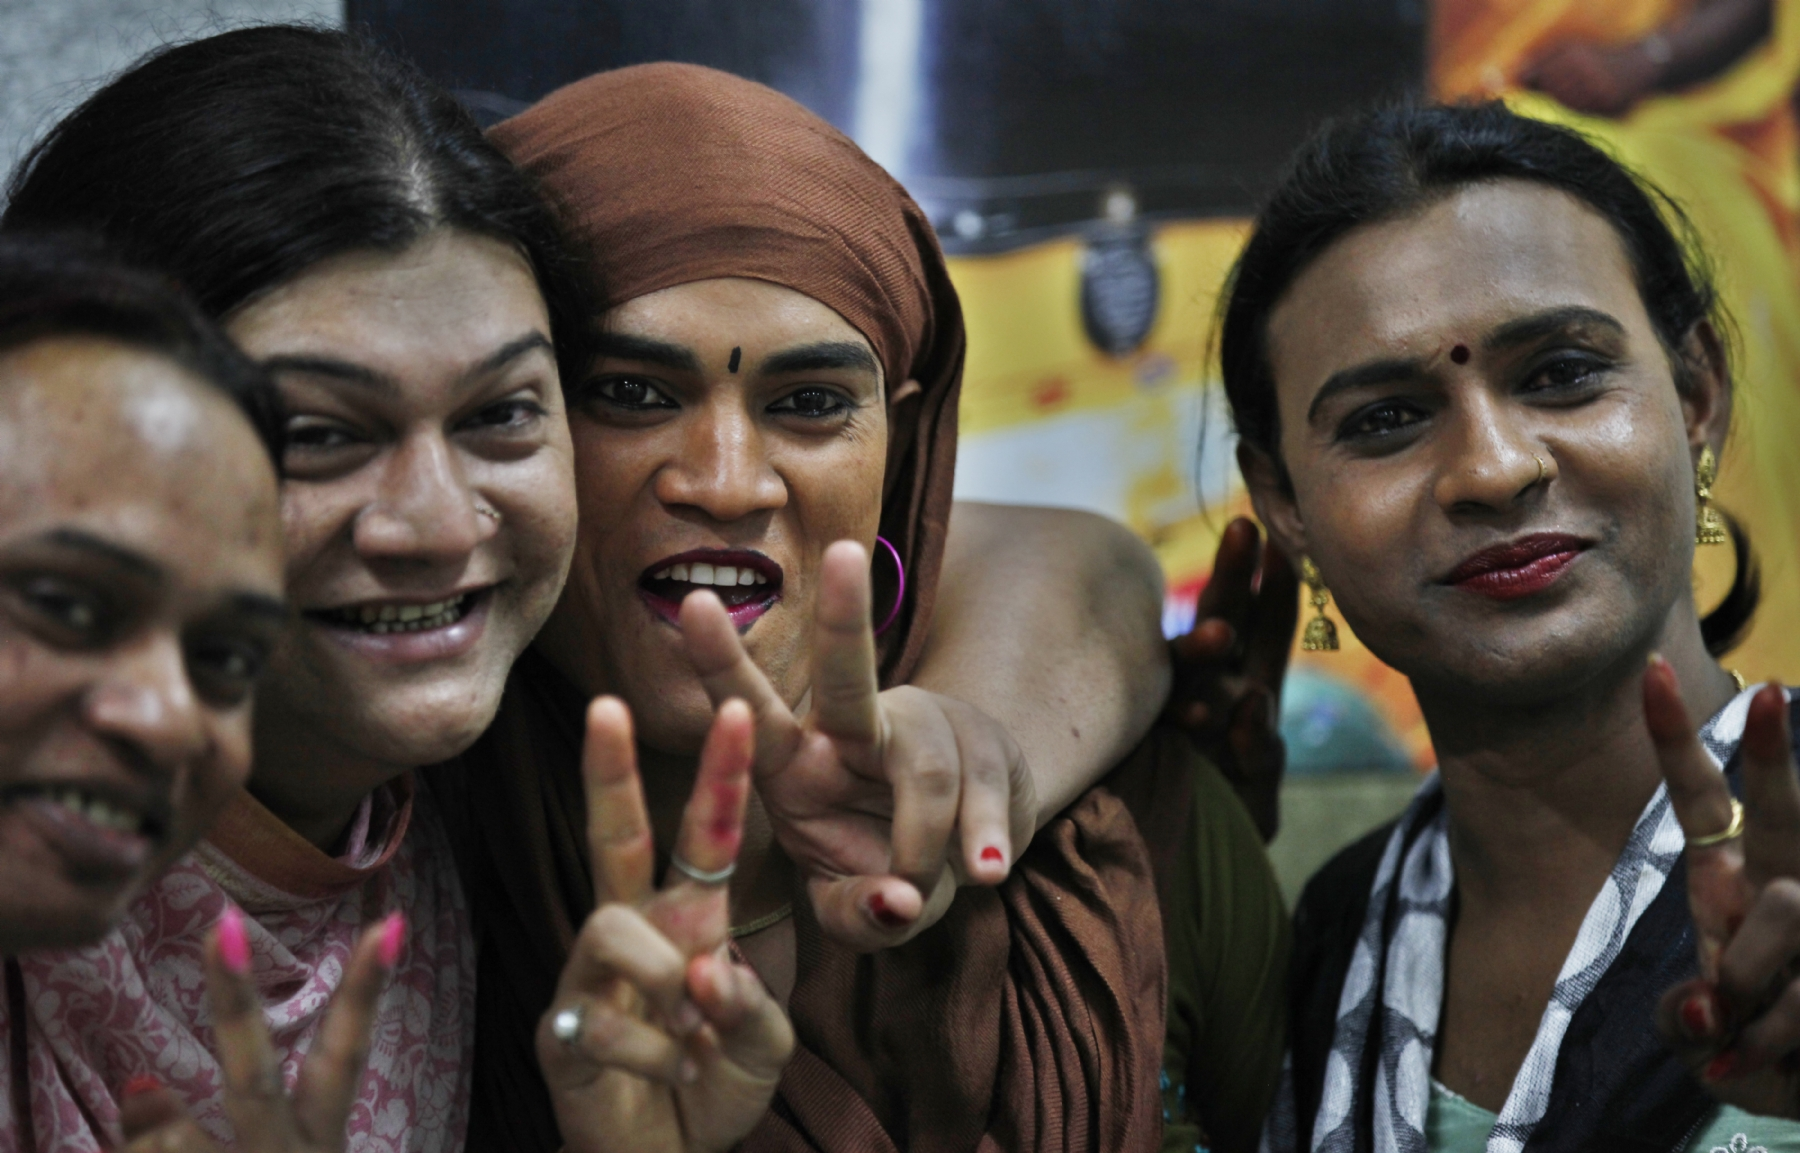 Not just 'Gender Equality', it is about 'Equality for All': Kochi Metro hires 23 Transgender persons